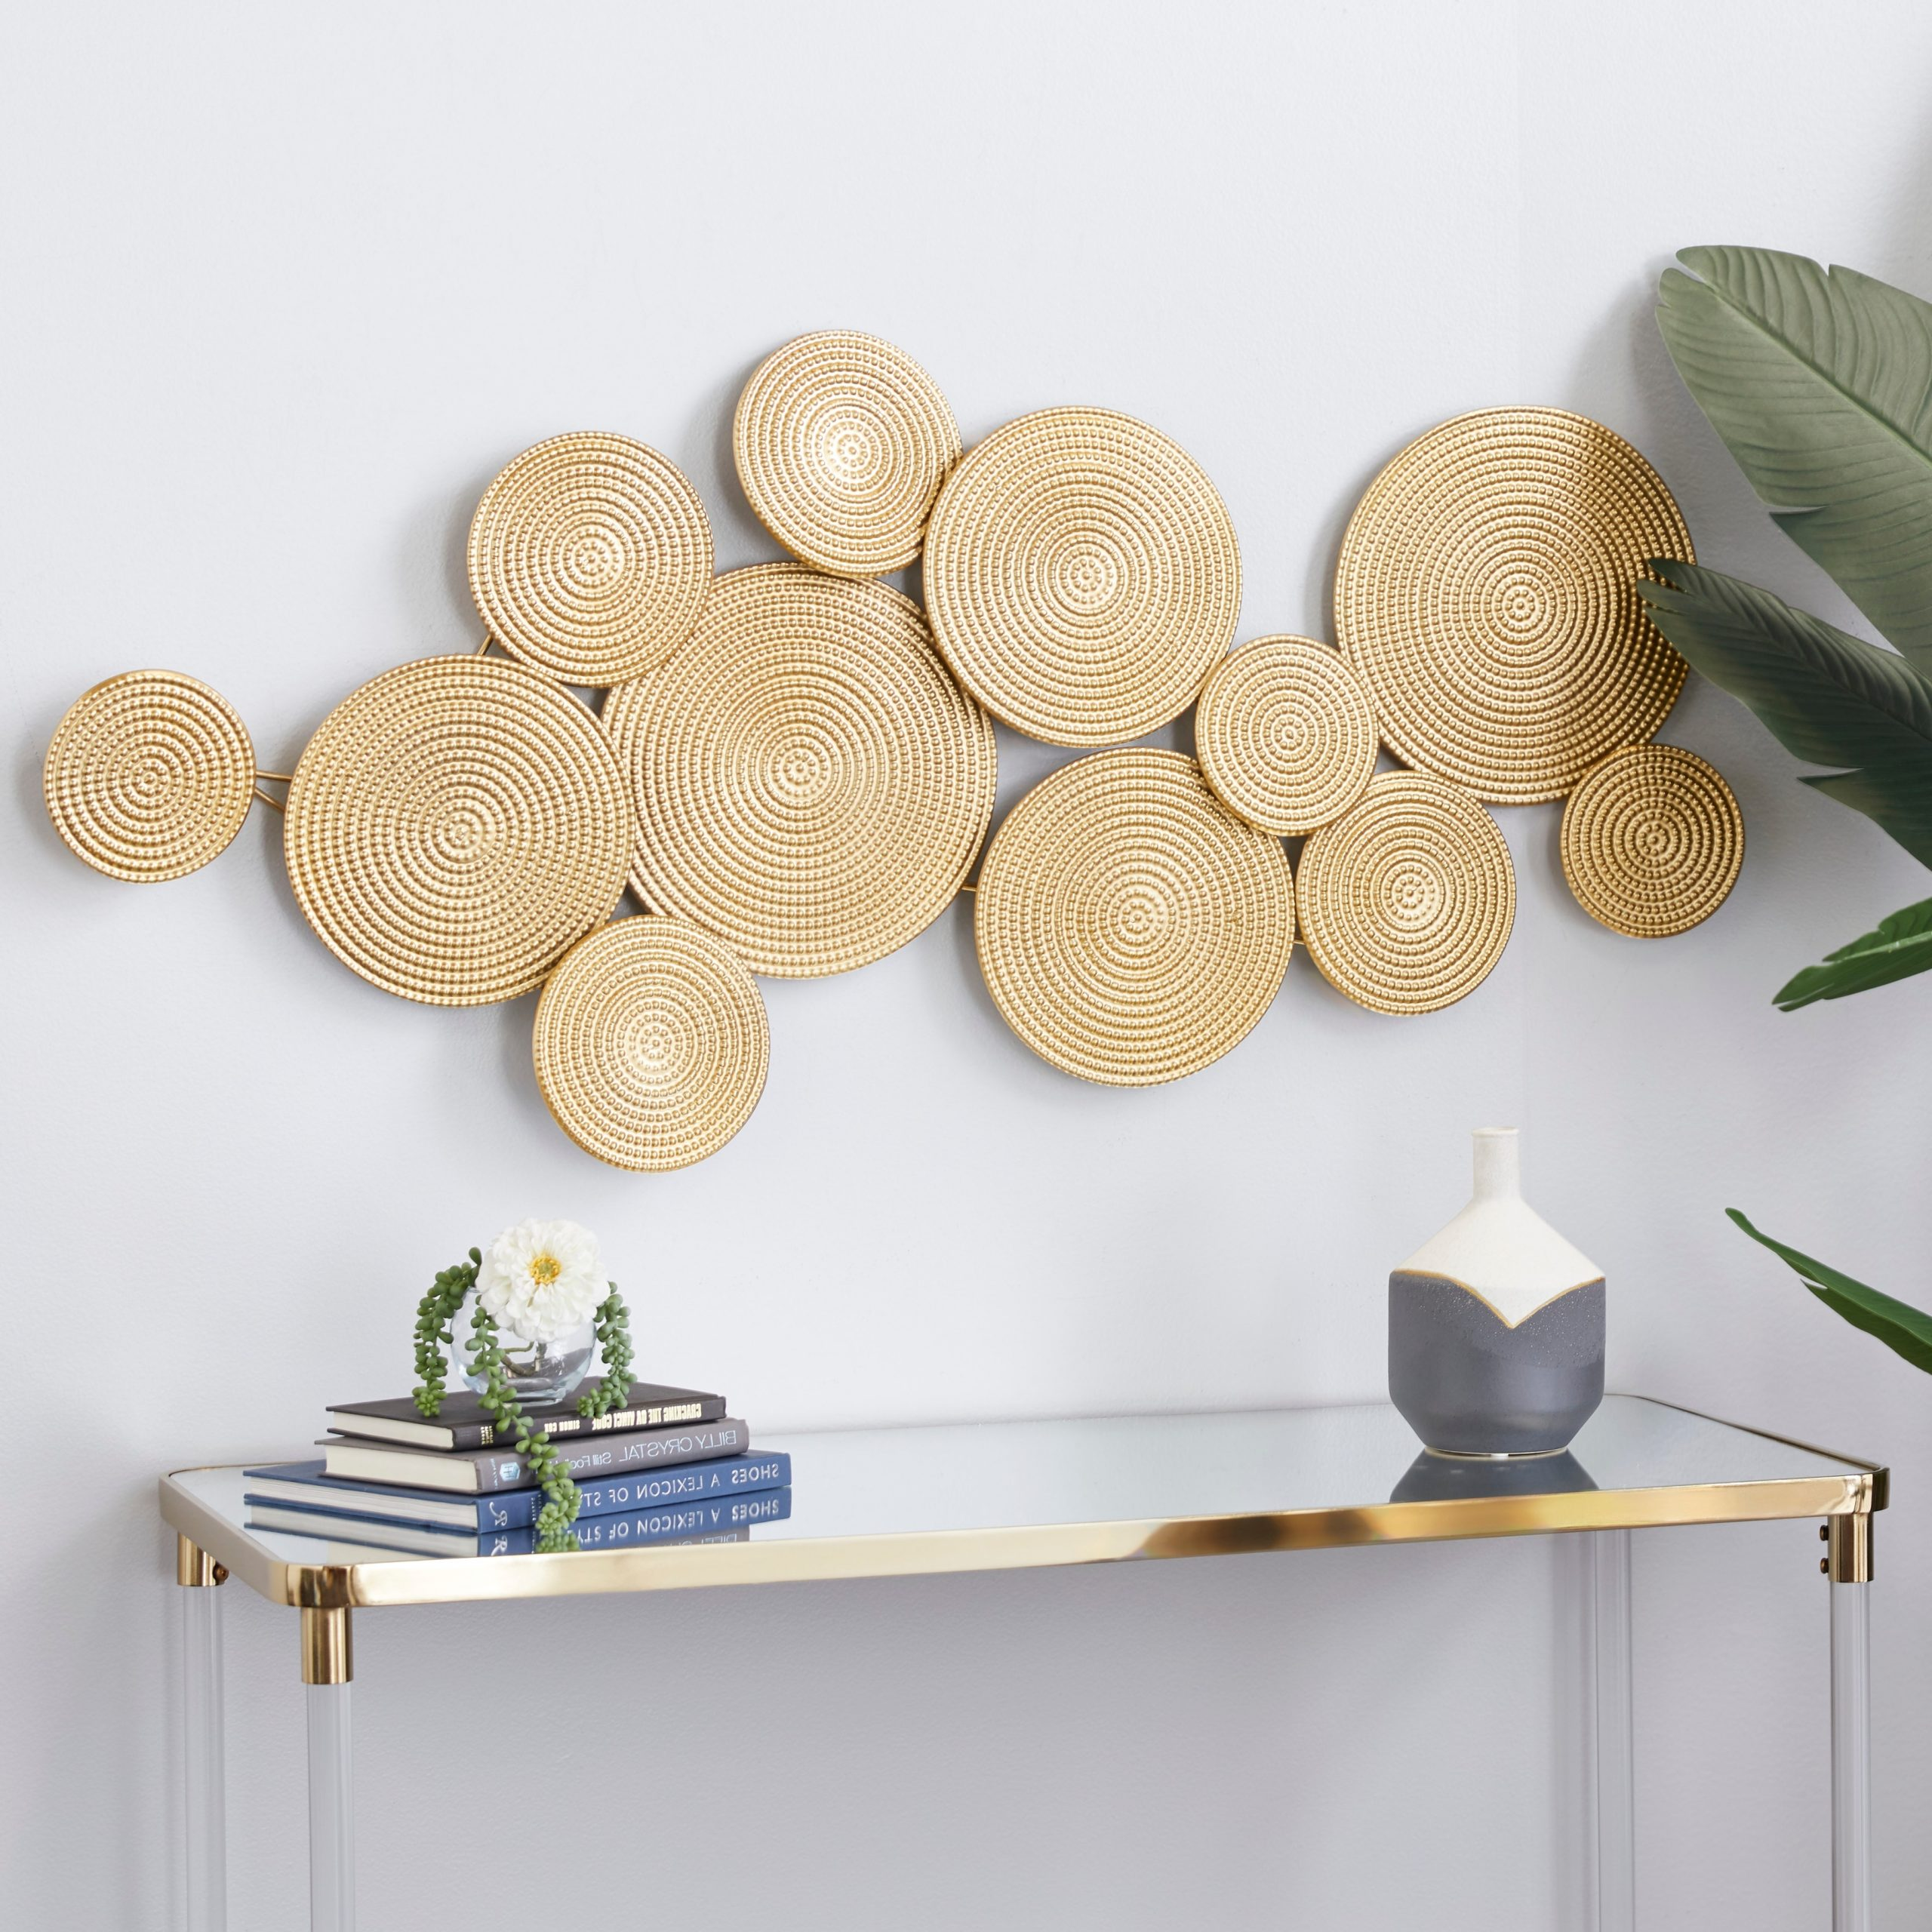 Metal Wall Décor By Cosmoliving Inside Well Known Cosmolivingcosmopolitan Gold Metal Wall Decor 24 X 49 X 3 – 49 X 3 X (View 3 of 20)